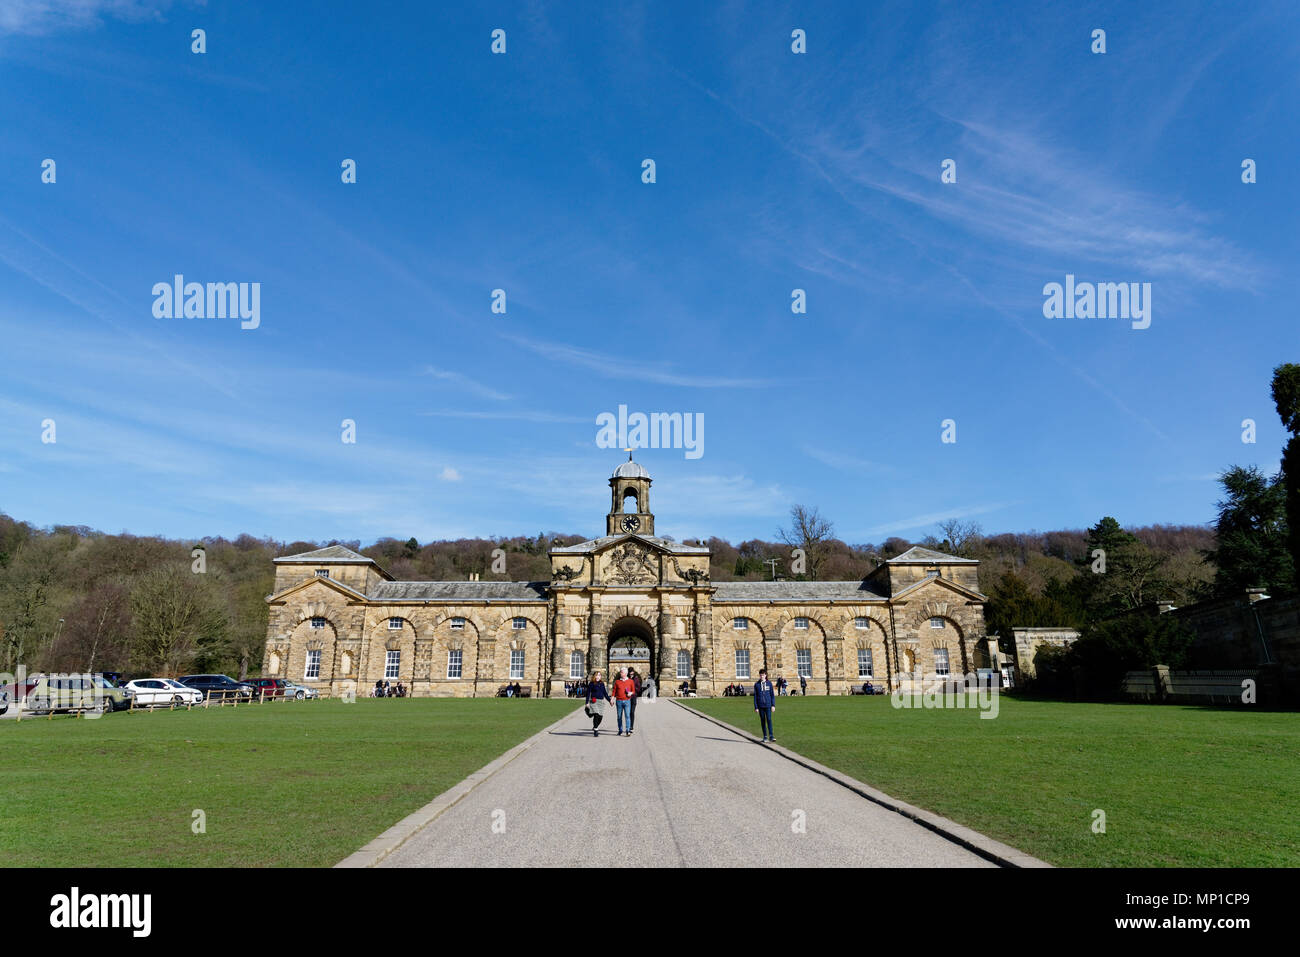 The STables at Chatsworth House, Bakewell, Derbyshire - Stock Image